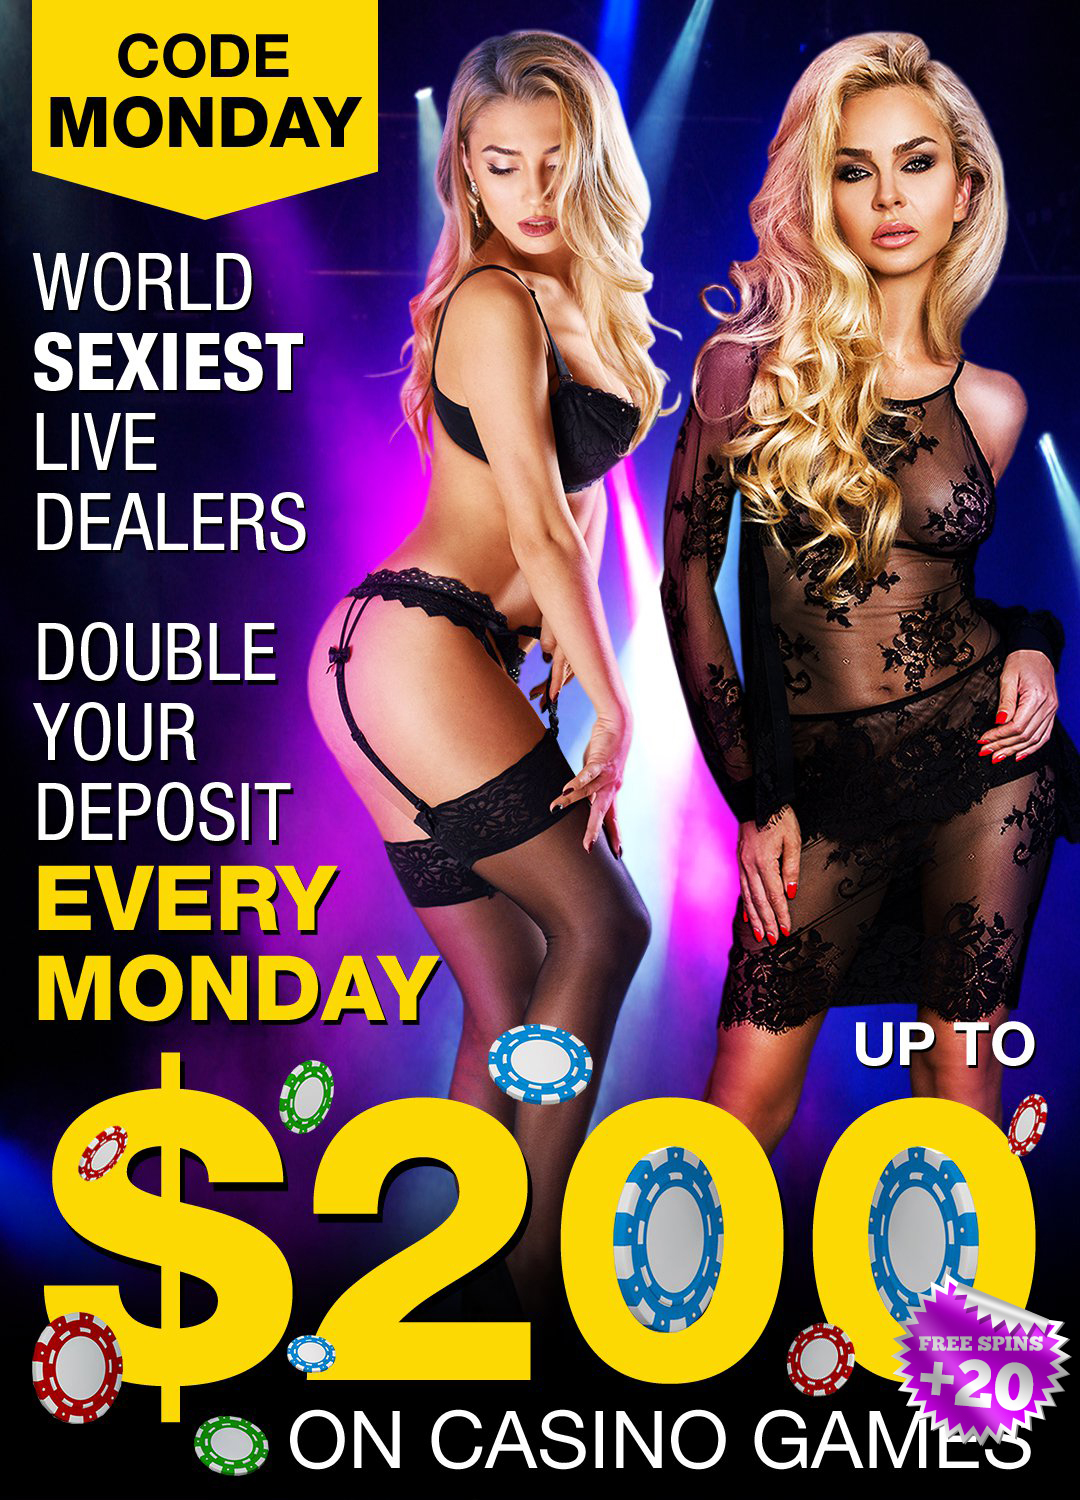 free-casino-bonus-every-monday-upto-200-20-free-spins